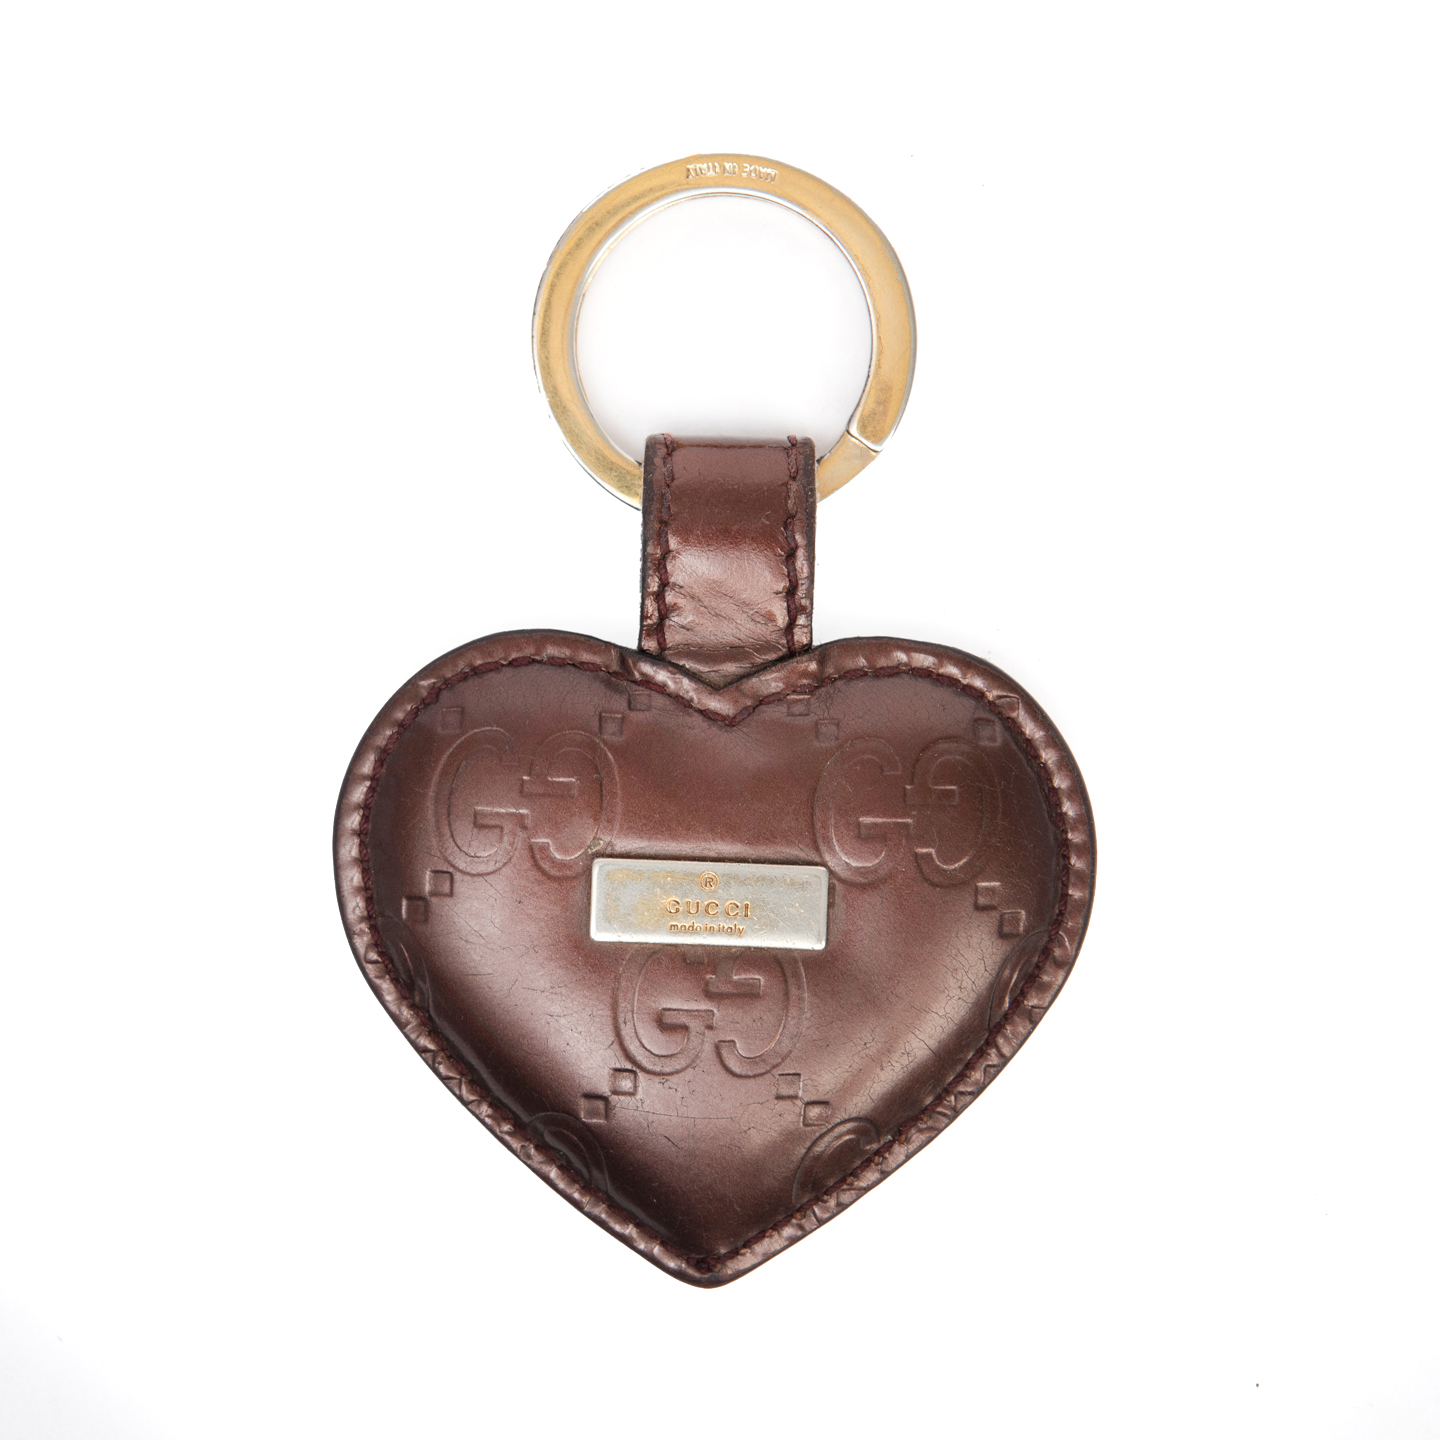 Gucci Guccissima Bronze Leather Heart Keychain 01